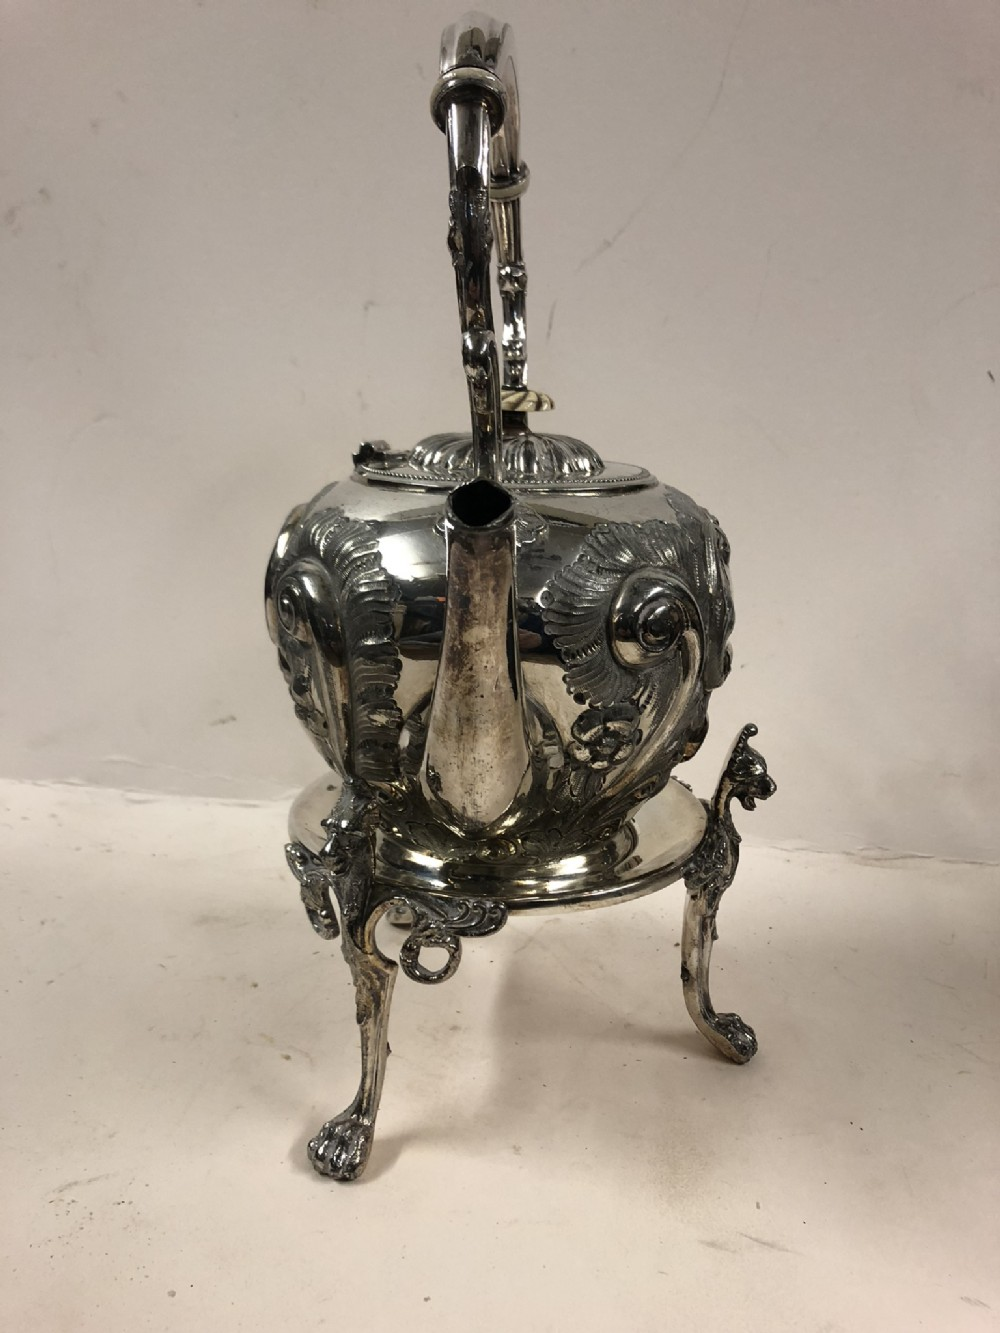 a silver plated kettle on stand